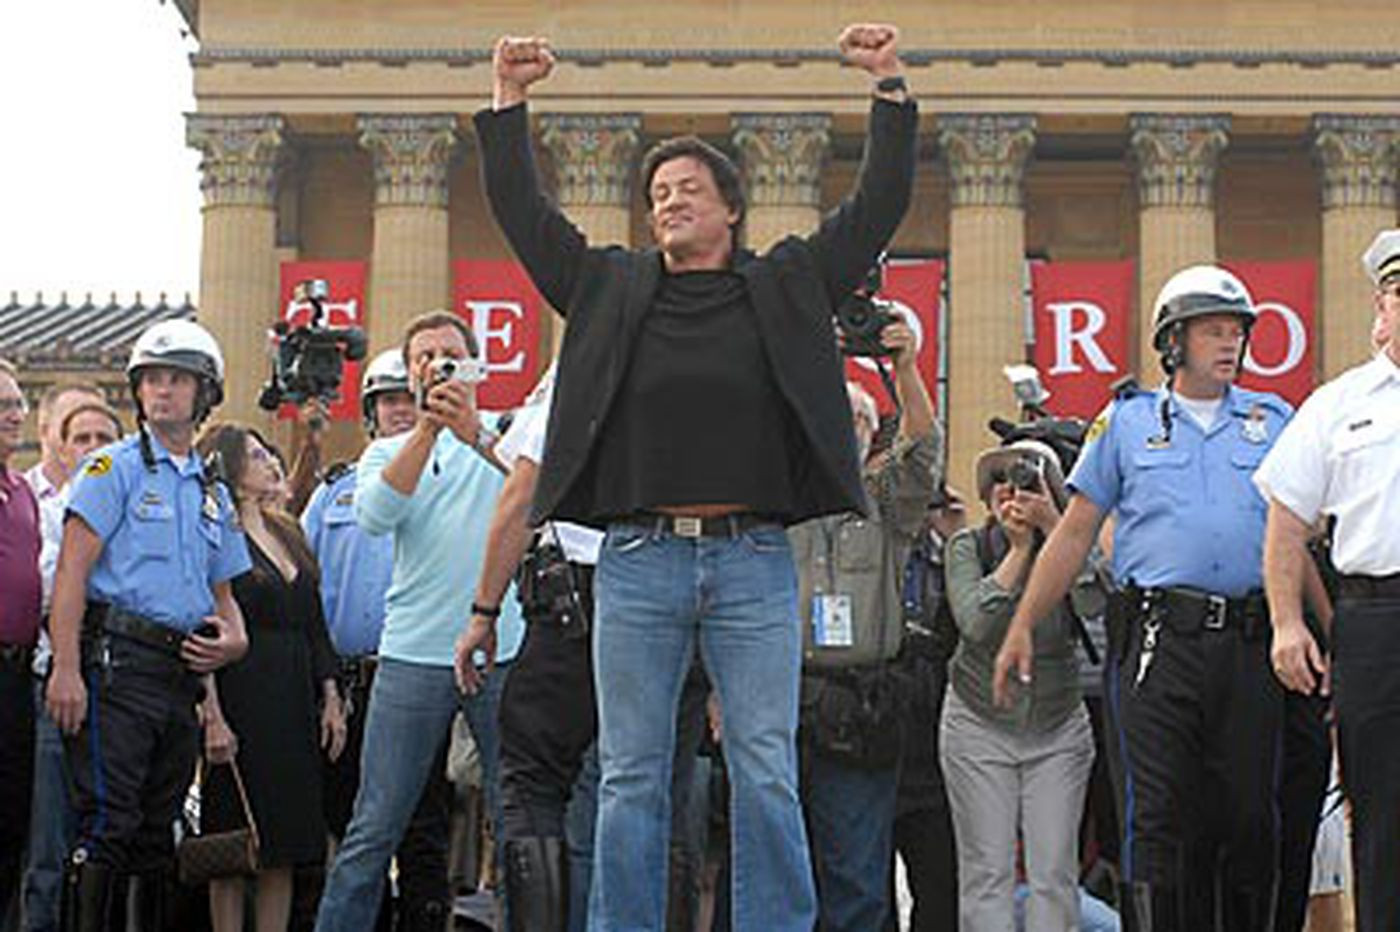 'Rocky,' alter-ego Stallone to join immortals in Boxing Hall of Fame